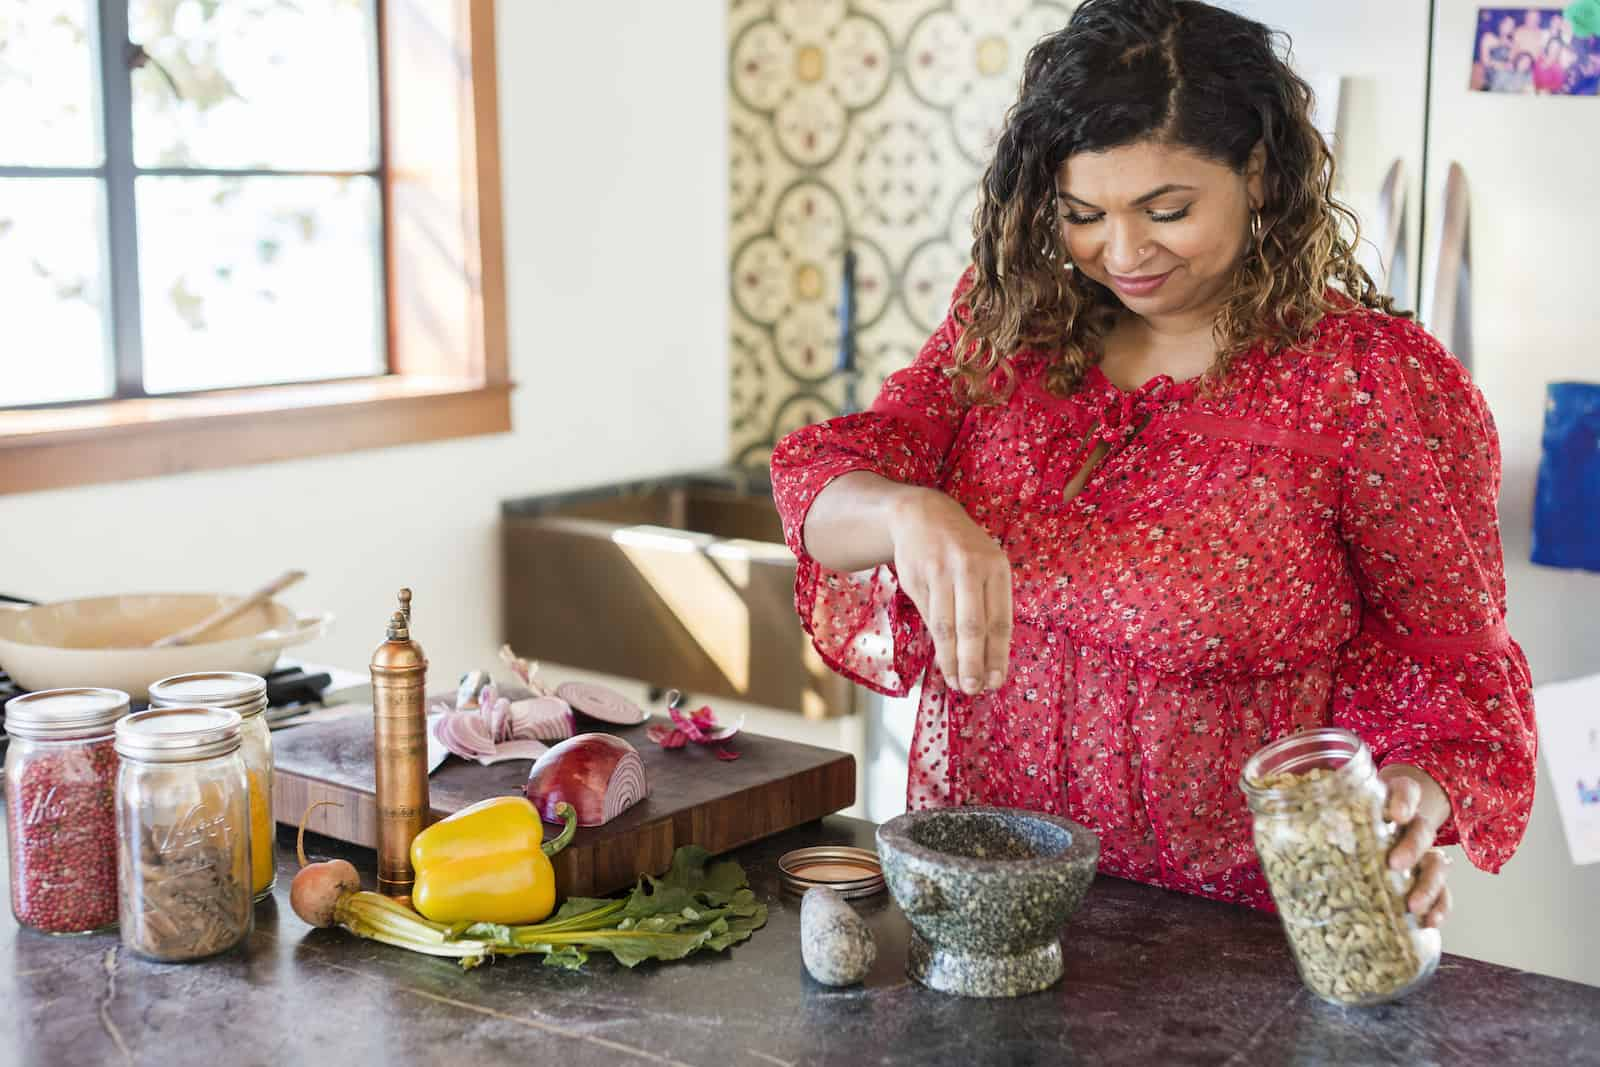 Aarti Sequeira cooks in a kitchen